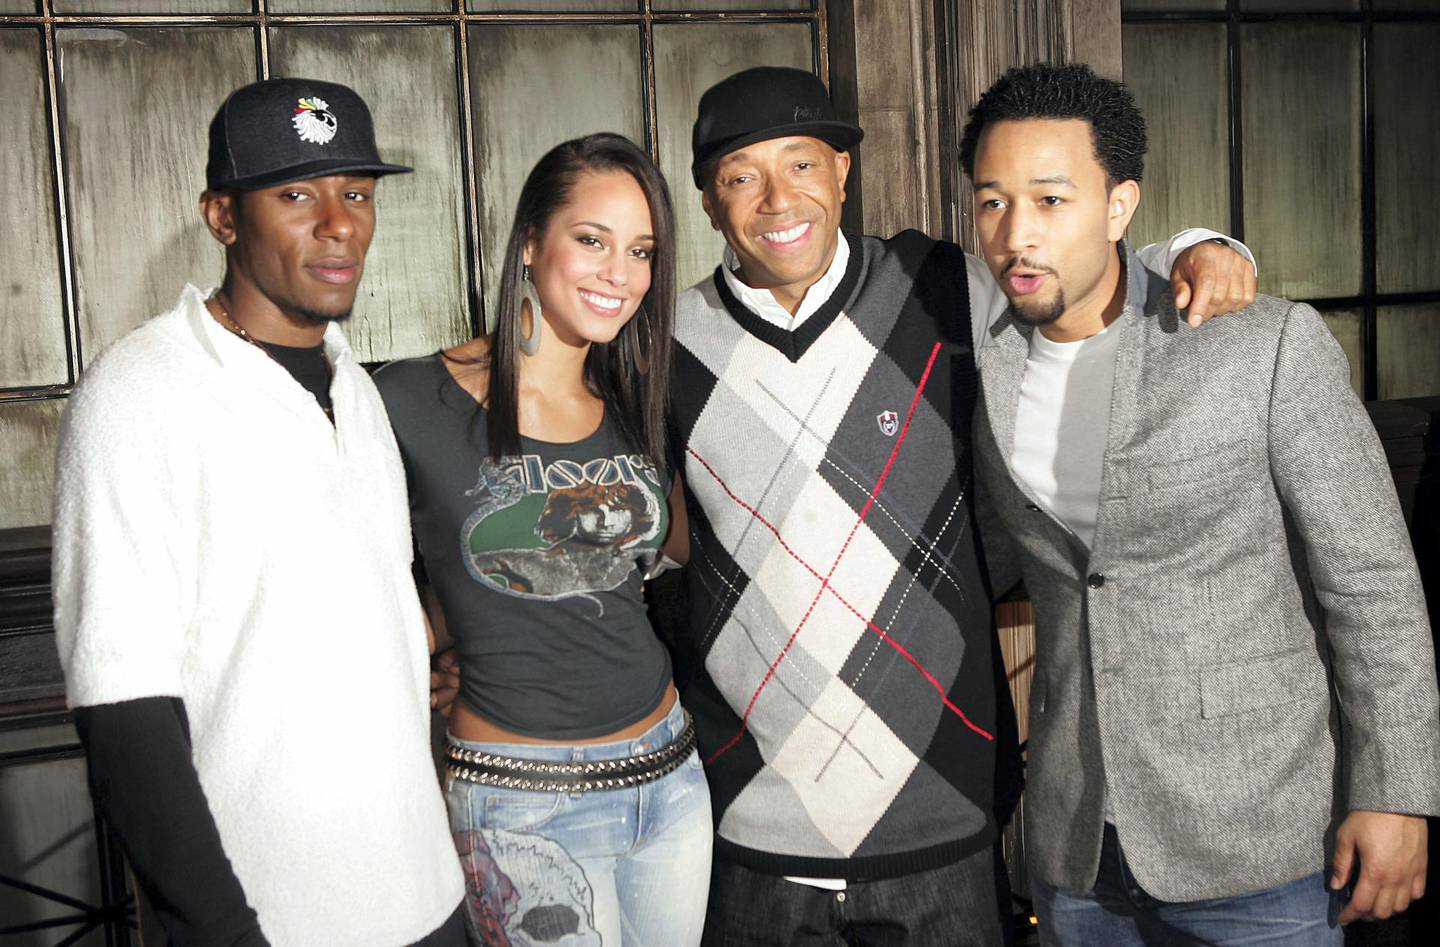 """NEW YORK - FEBRUARY 24: (L-R) Rapper Mos Def, musician Alicia Keys, producer Russell Simmons, and musician John Legend pose for a photo during rehearsals for HBO and Russell Simmons' """"Def Poetry Jam"""" on February 24, 2005 in New York City.  (Photo by Scott Gries/Getty Images)"""